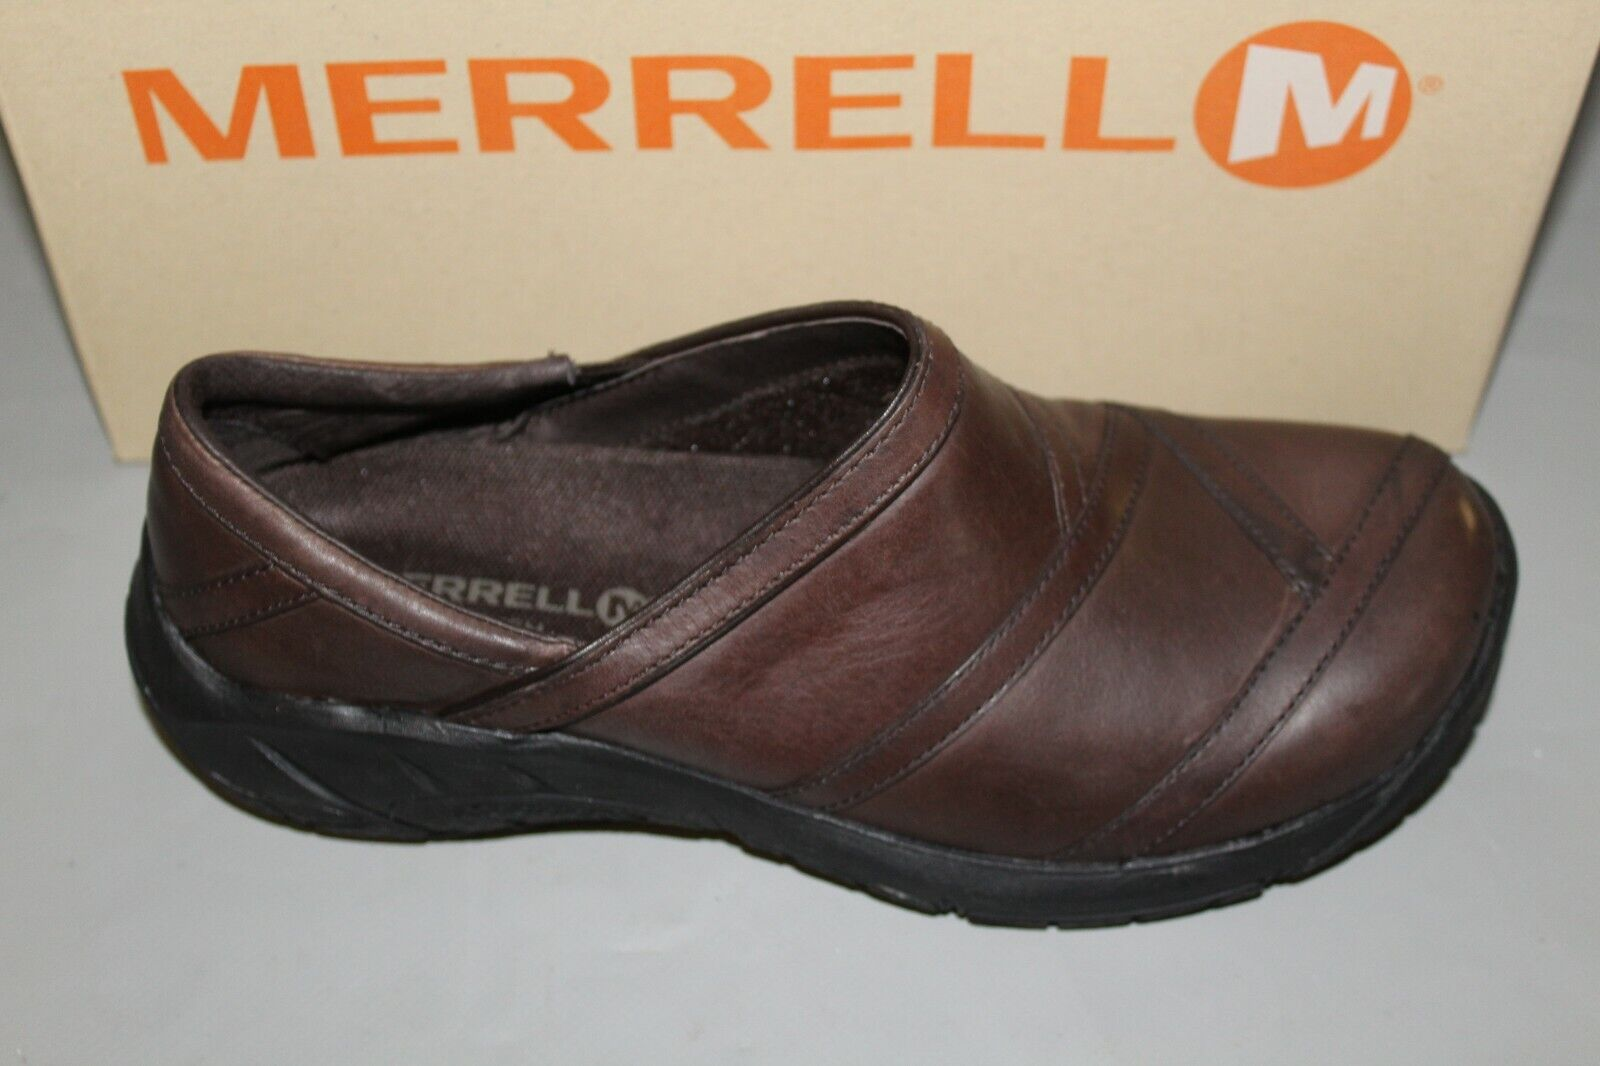 NEW Women's Merrell Encore Eclipse Size Size Size 8.5 Medium Brown Casual Comfortable shoes 8b8eb6